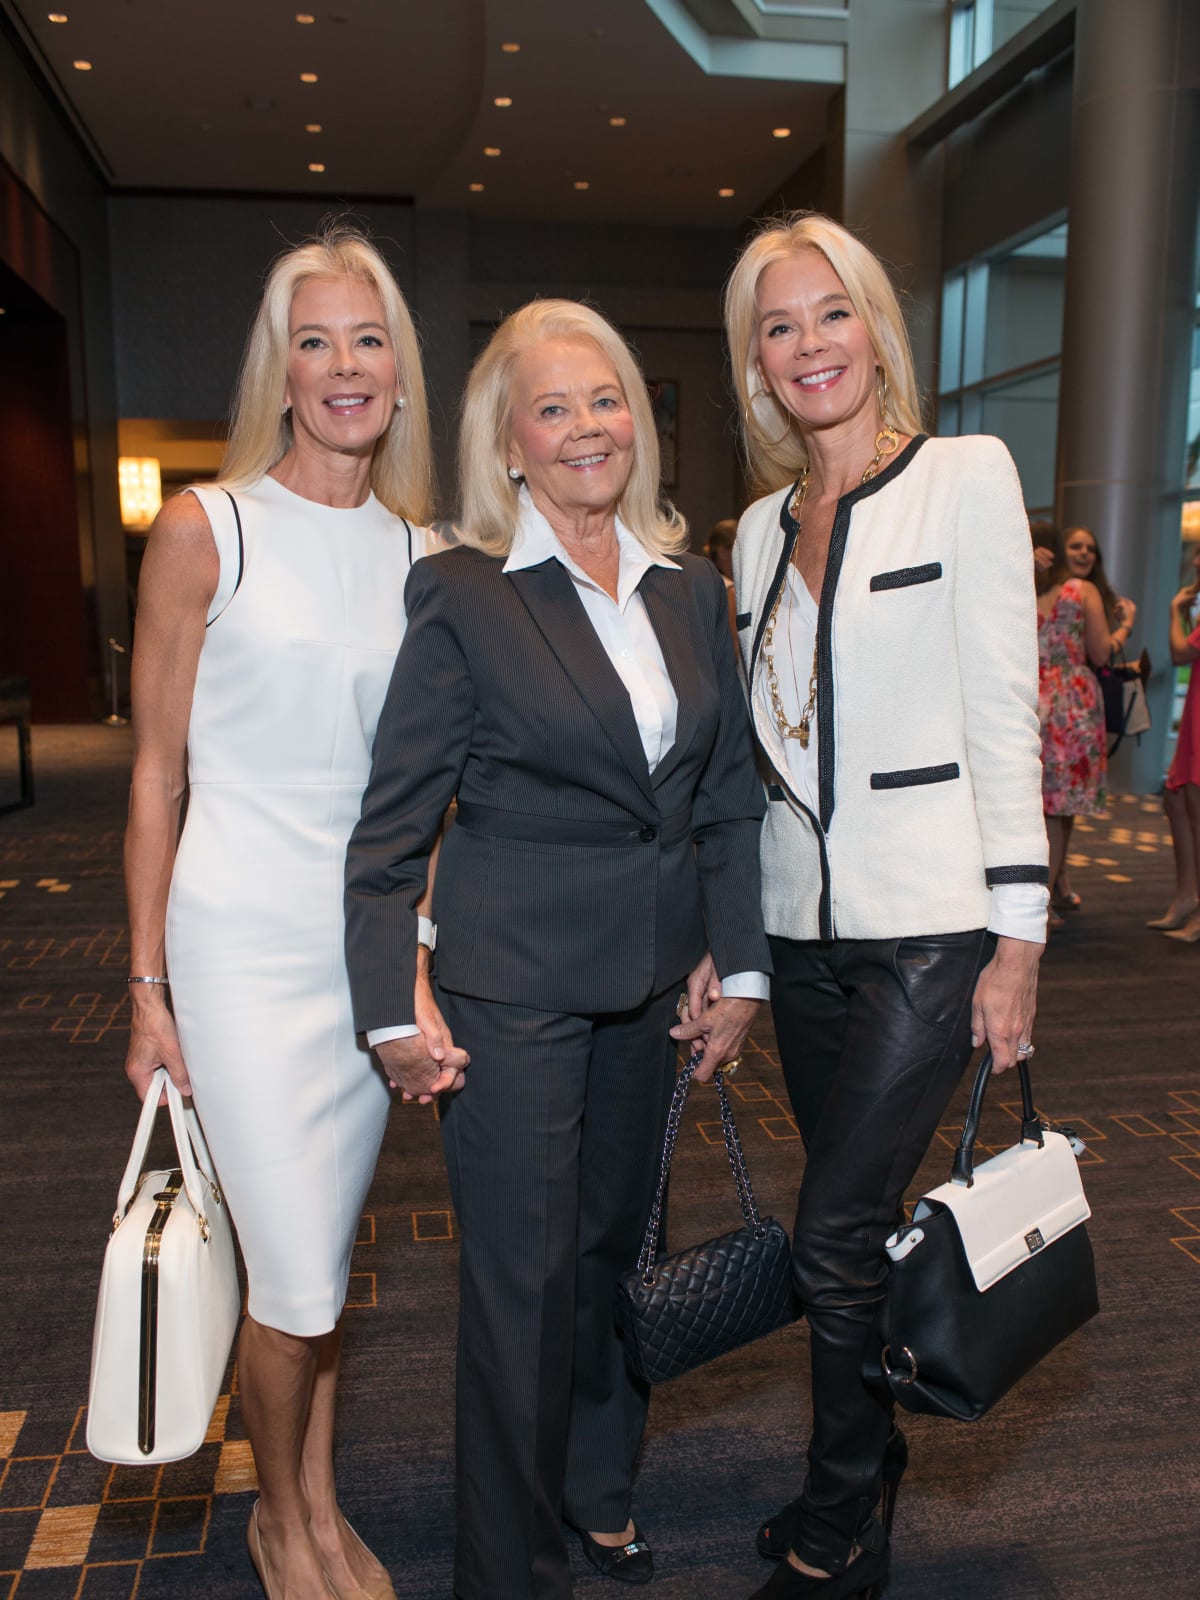 Crime Stoppers luncheon, 6/16 Tama Lundquist, Marge Lundquit, Tena Lundquist Faust